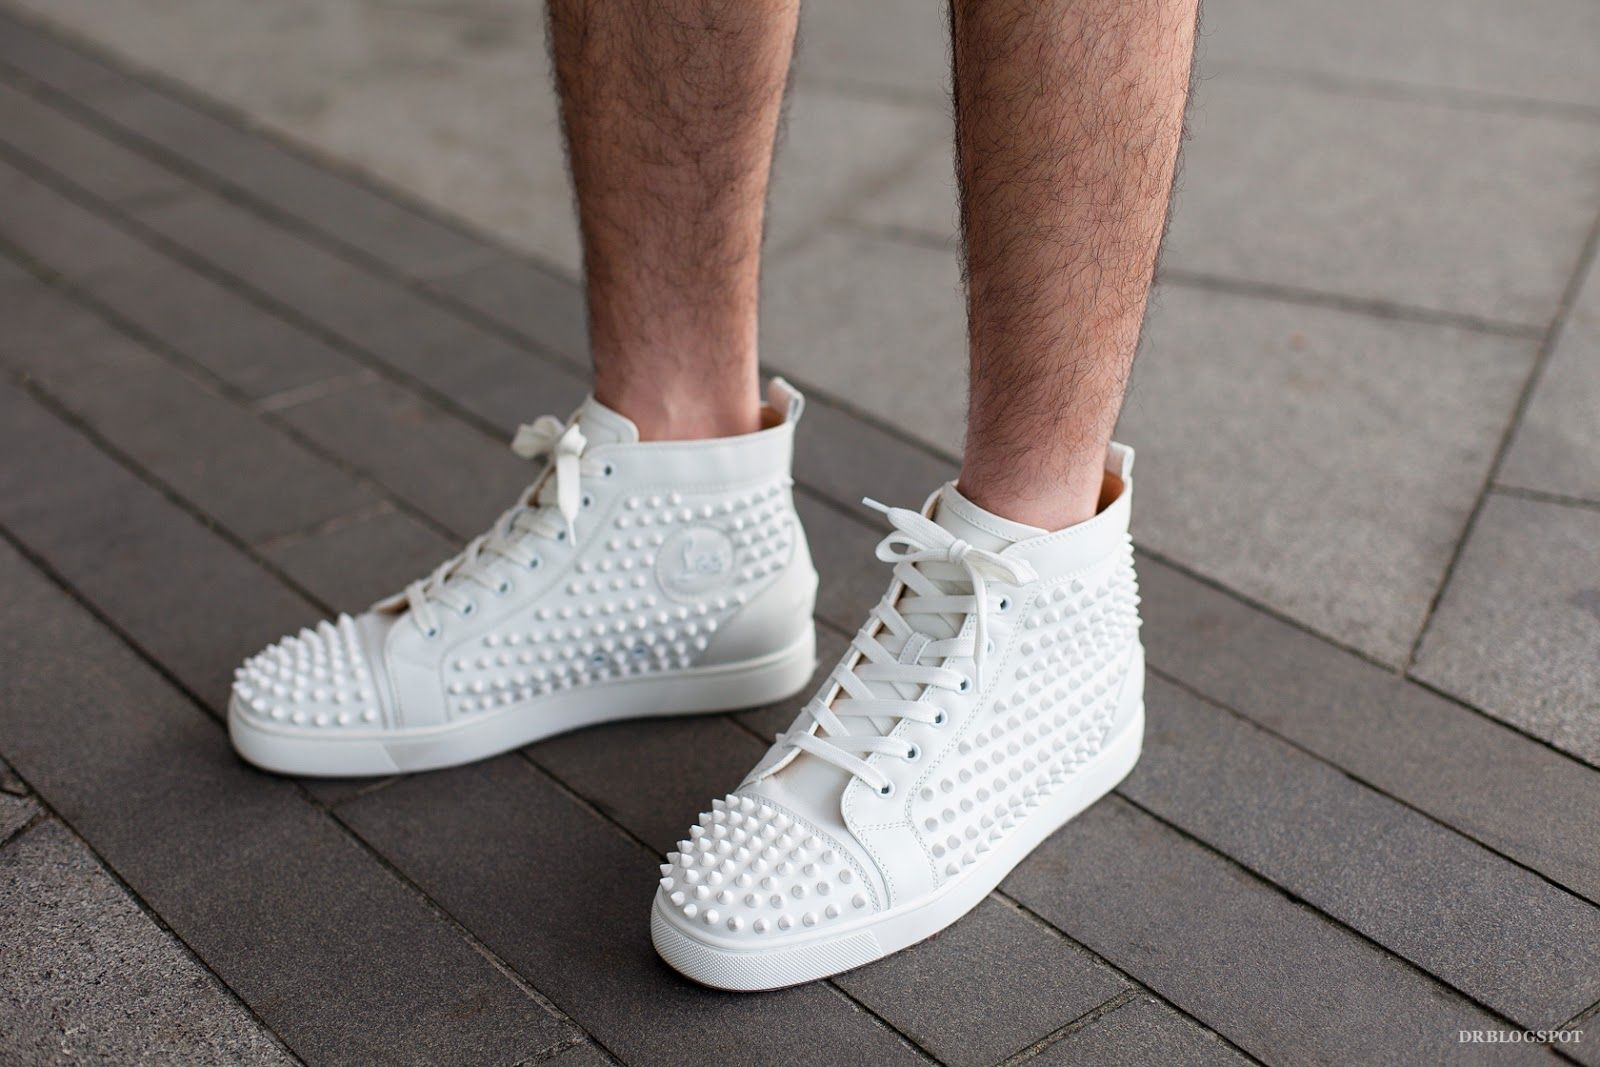 Christian-Louboutin-White-Louis-Spikes-Mens-Flat-High-Top-Sneaker ... 594f50327911